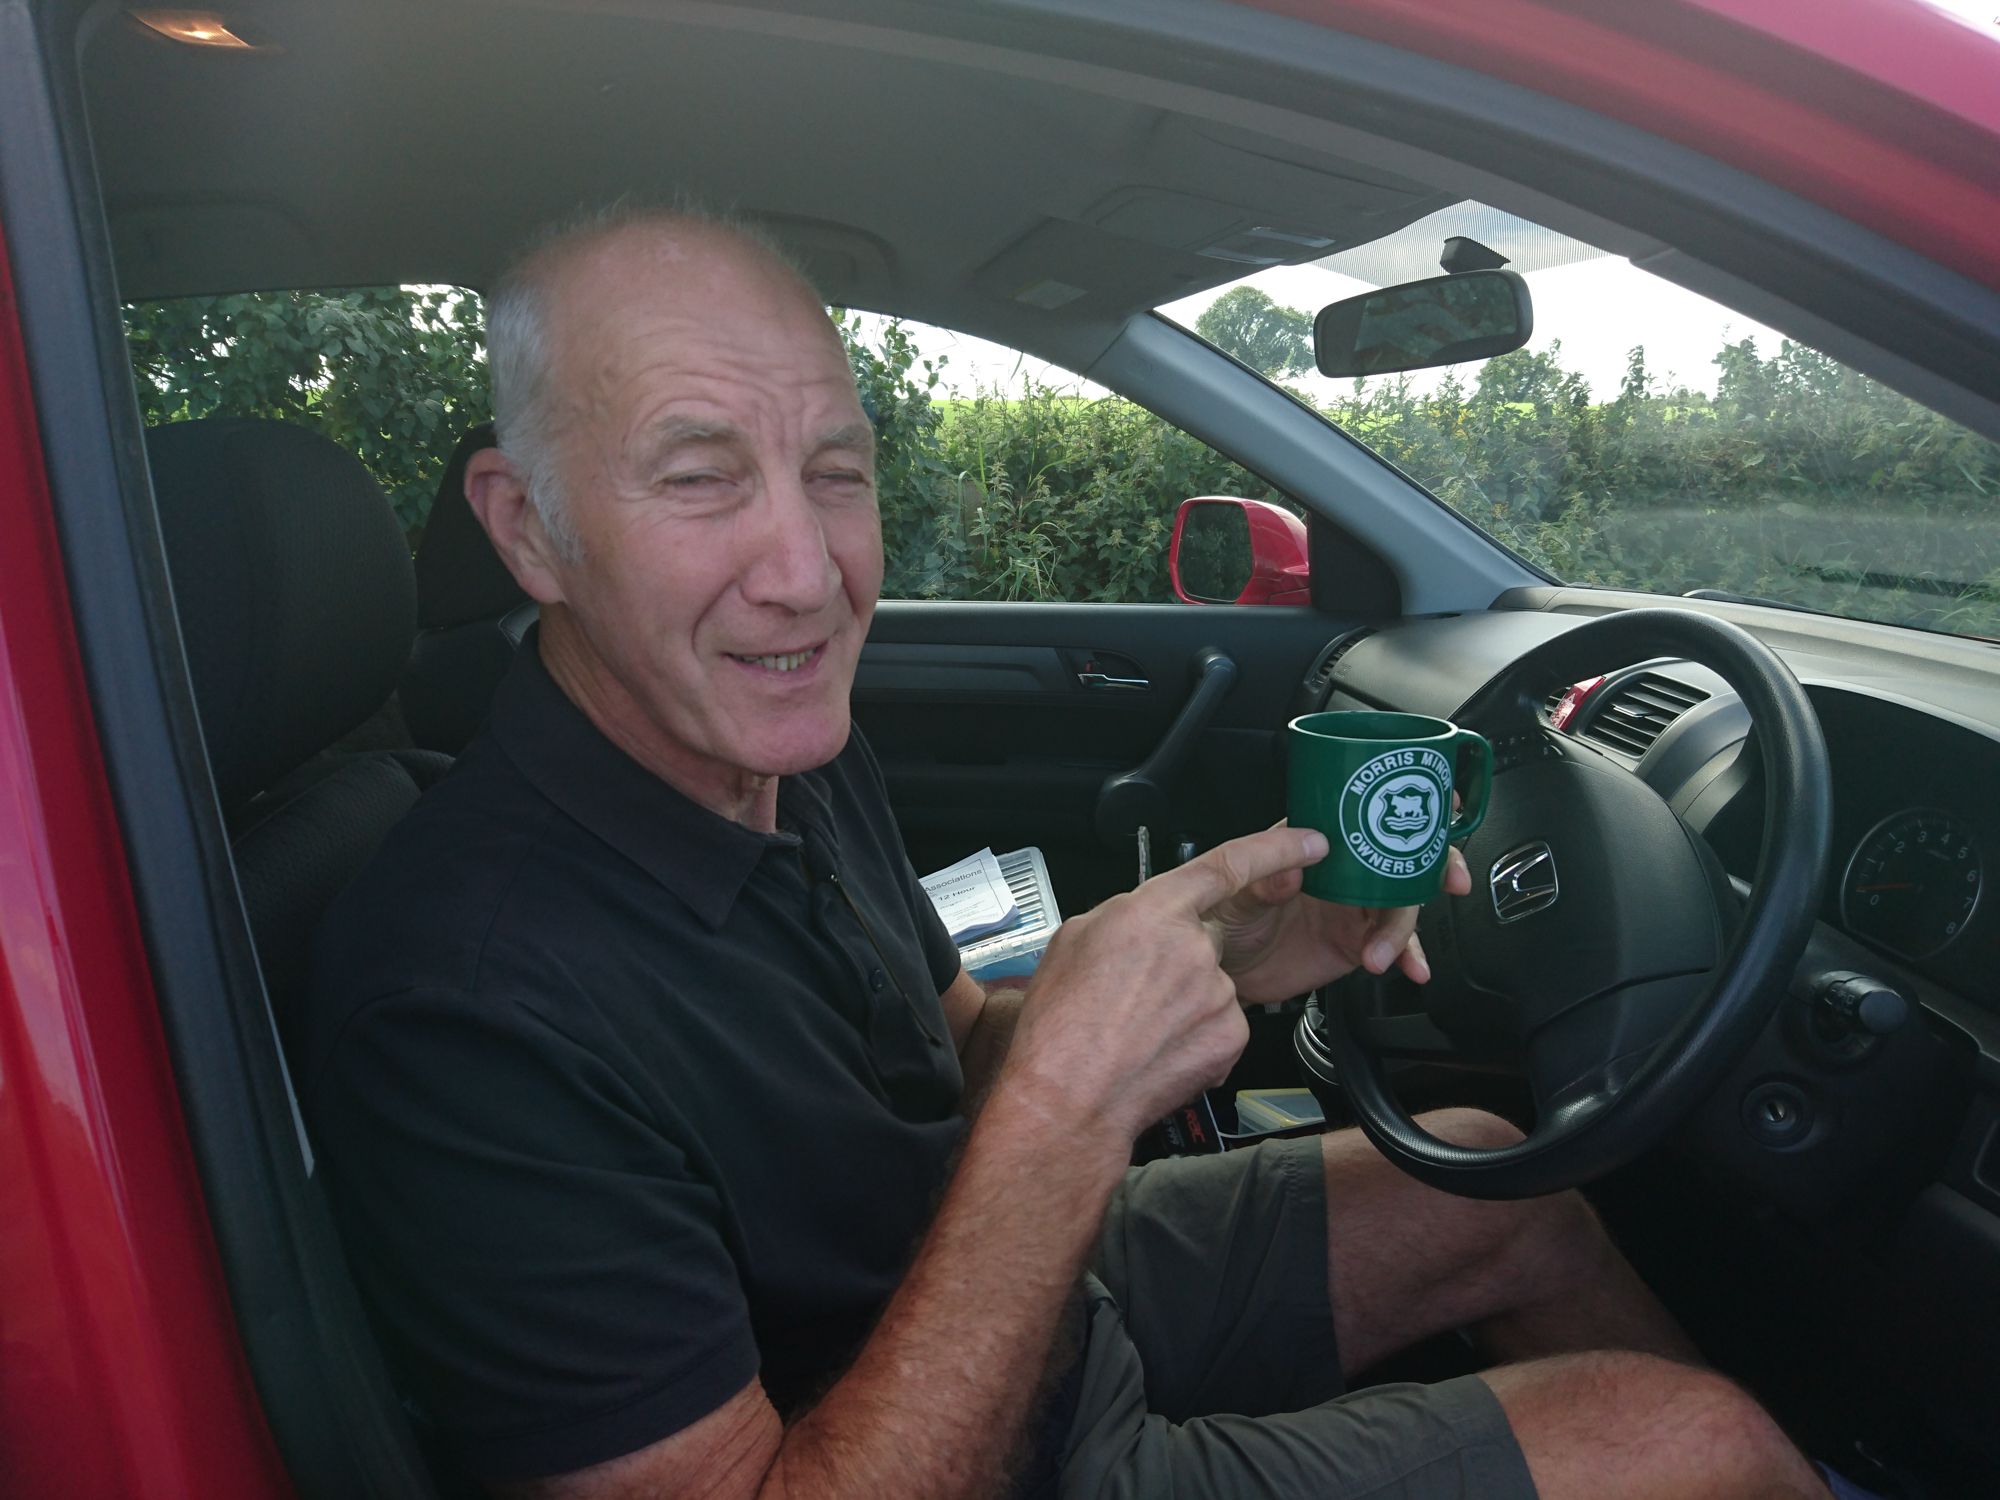 Syd takes time out from supporting Jim to show us his Morris Minor Mug.